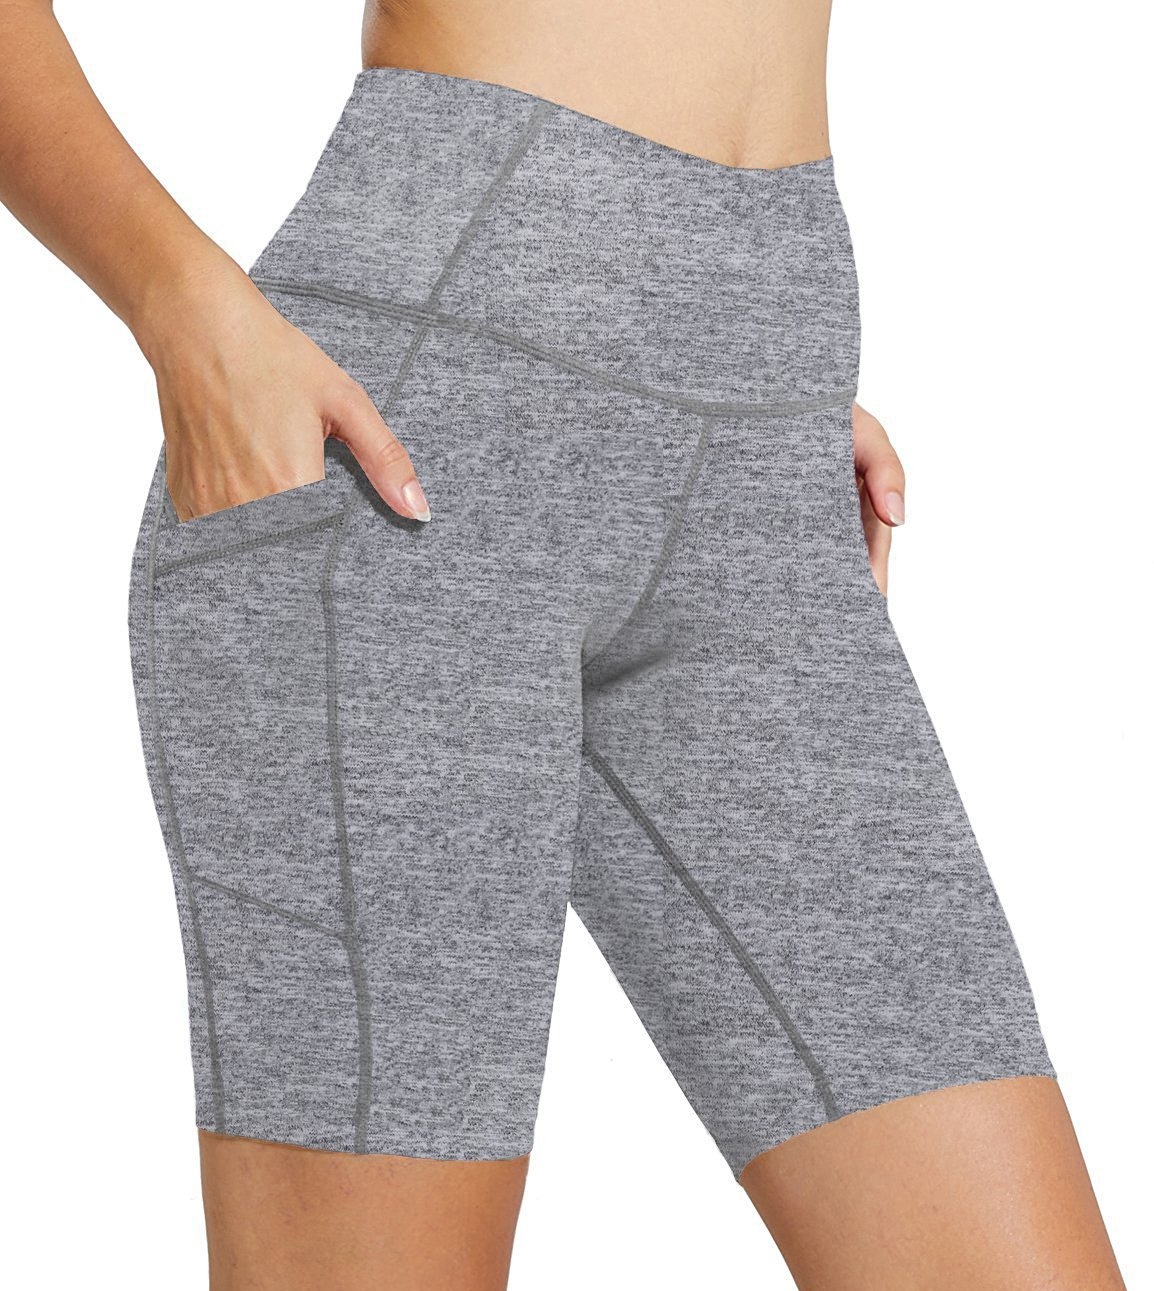 FIRM ABS Women's Tummy Control Fitness Workout Running Bike Shorts Yoga Shorts M